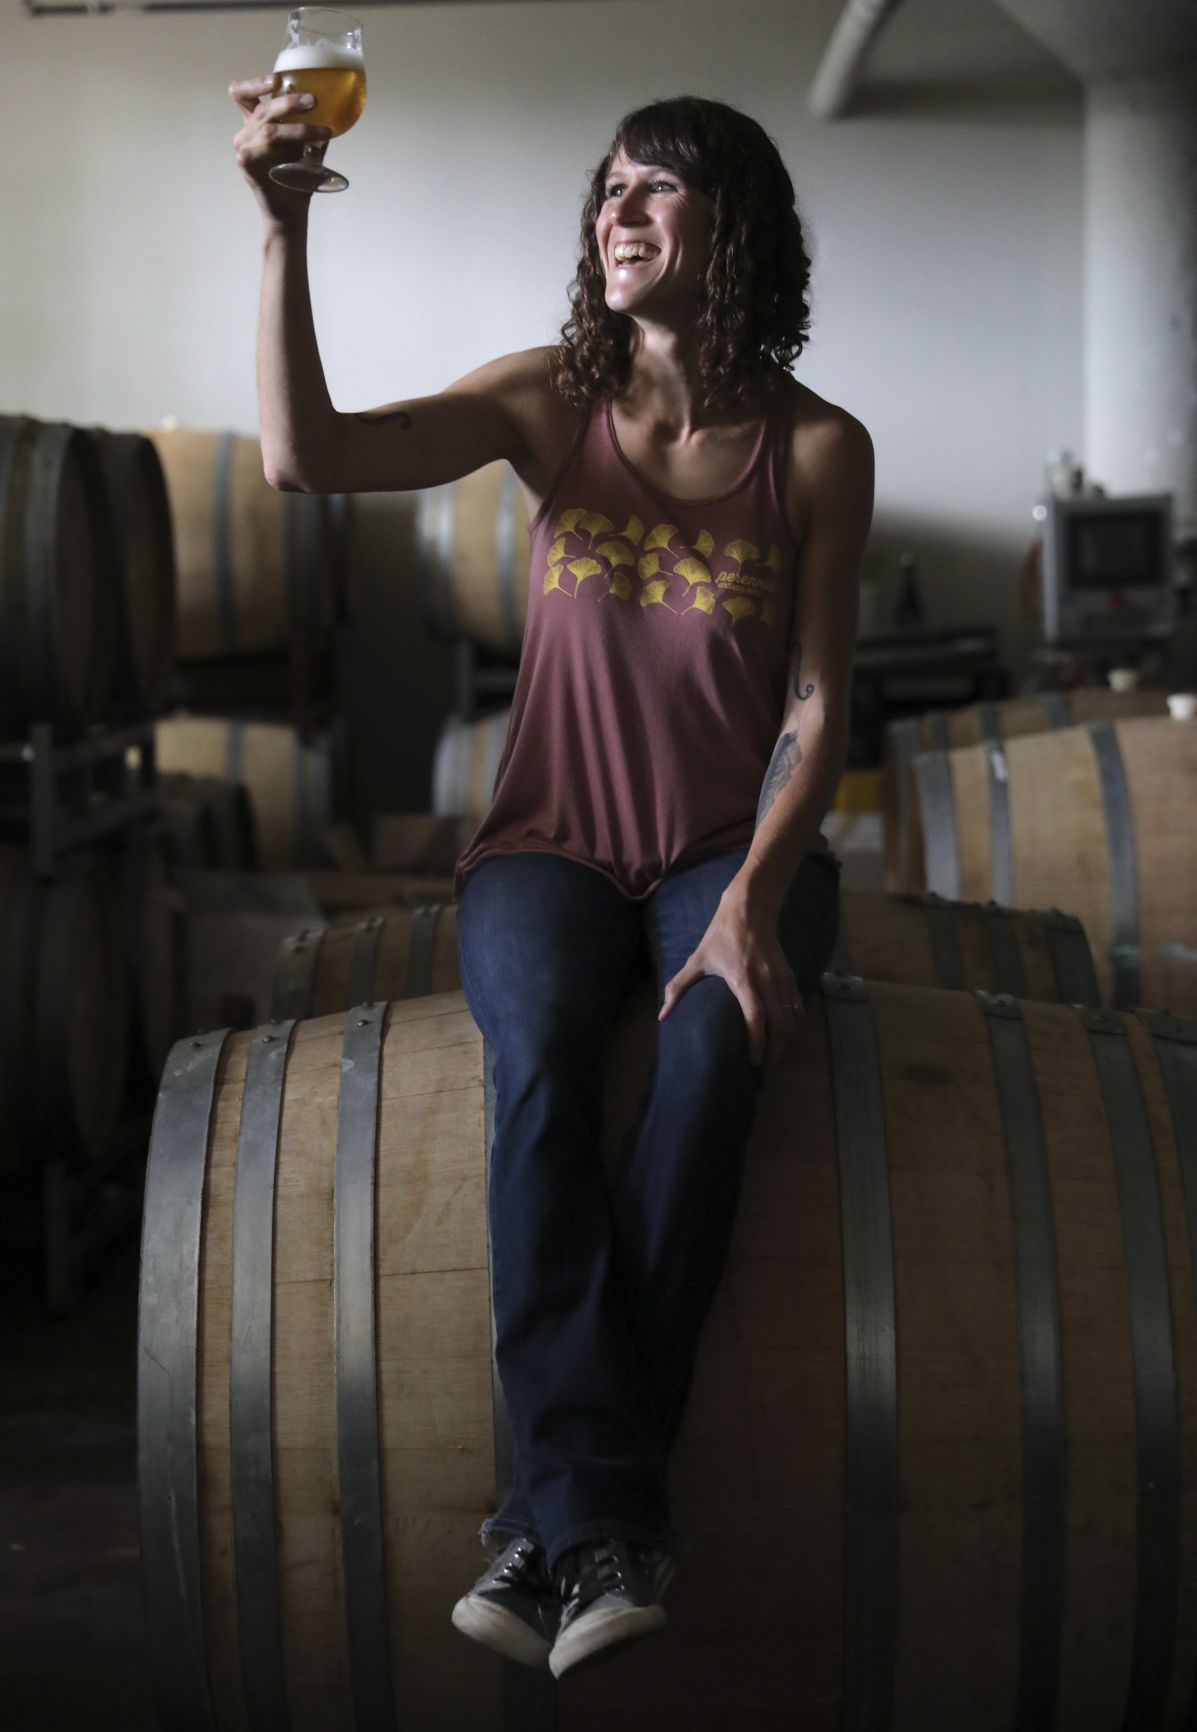 Q&A with Johanna Foege from Perennial Ales